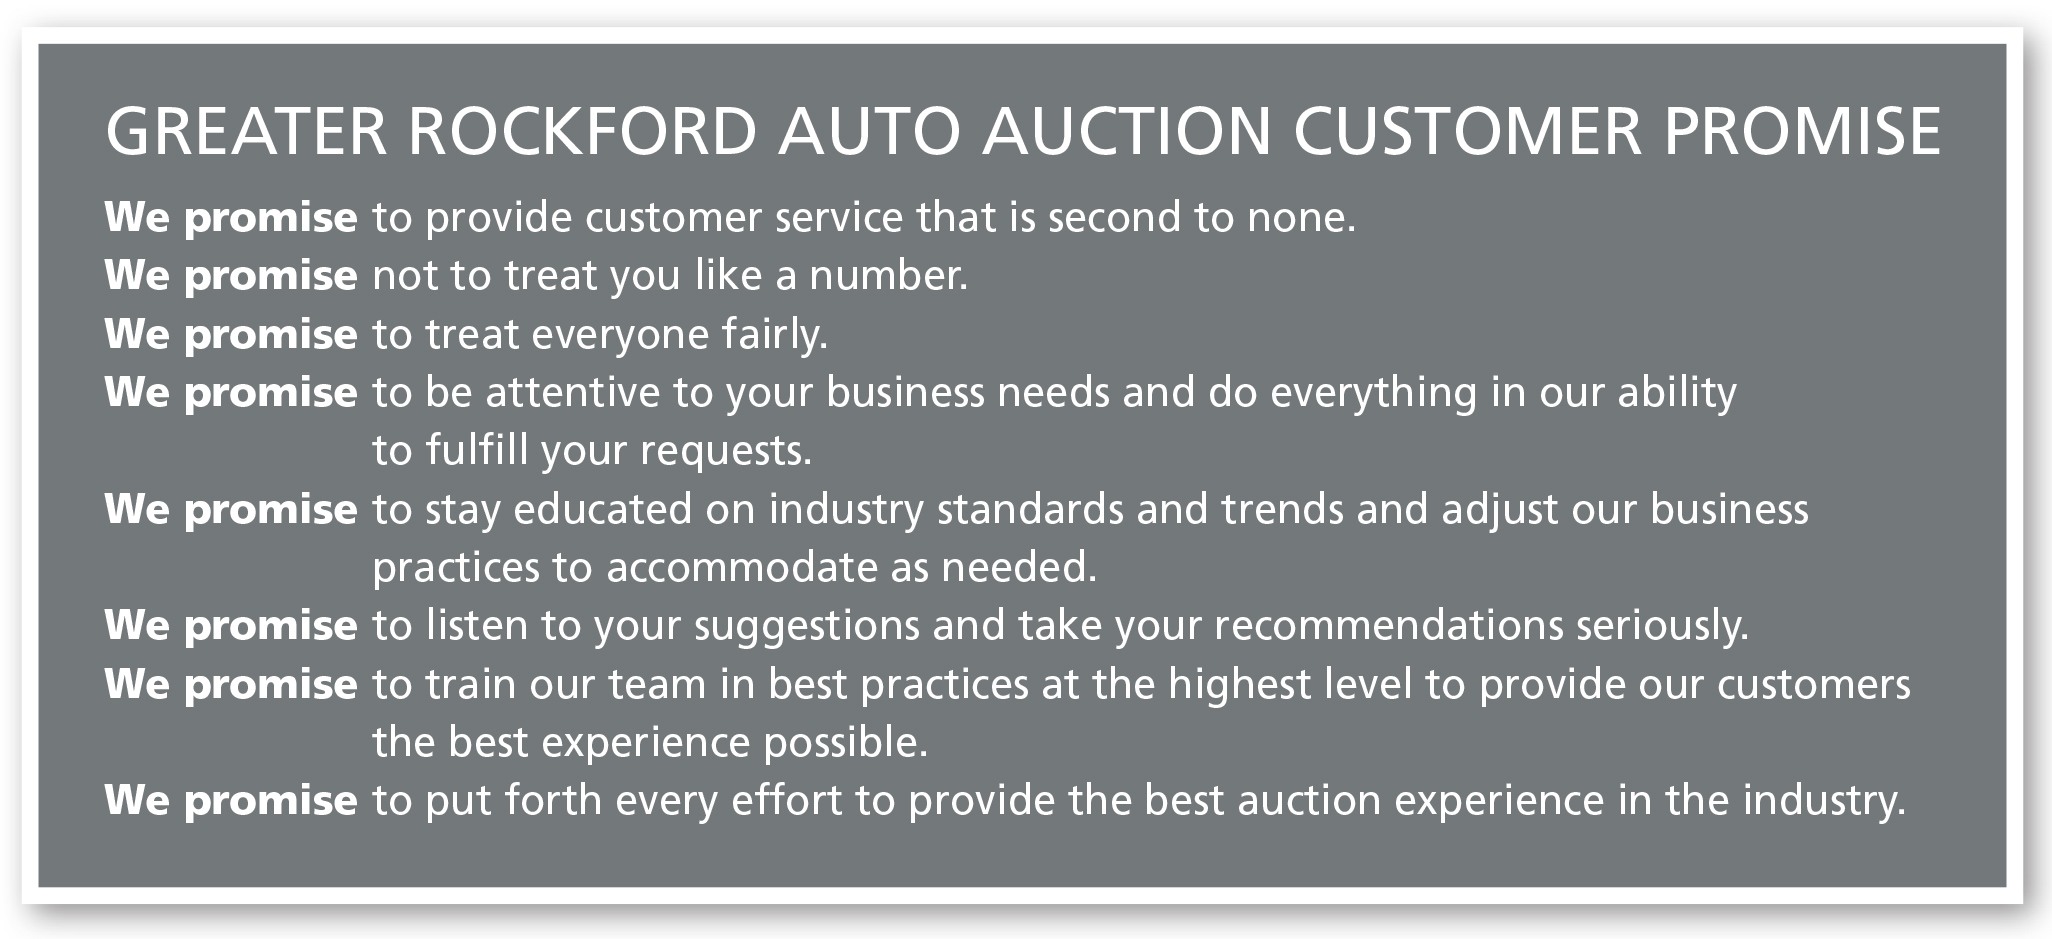 Greater Rockford Auto Auction We Promise